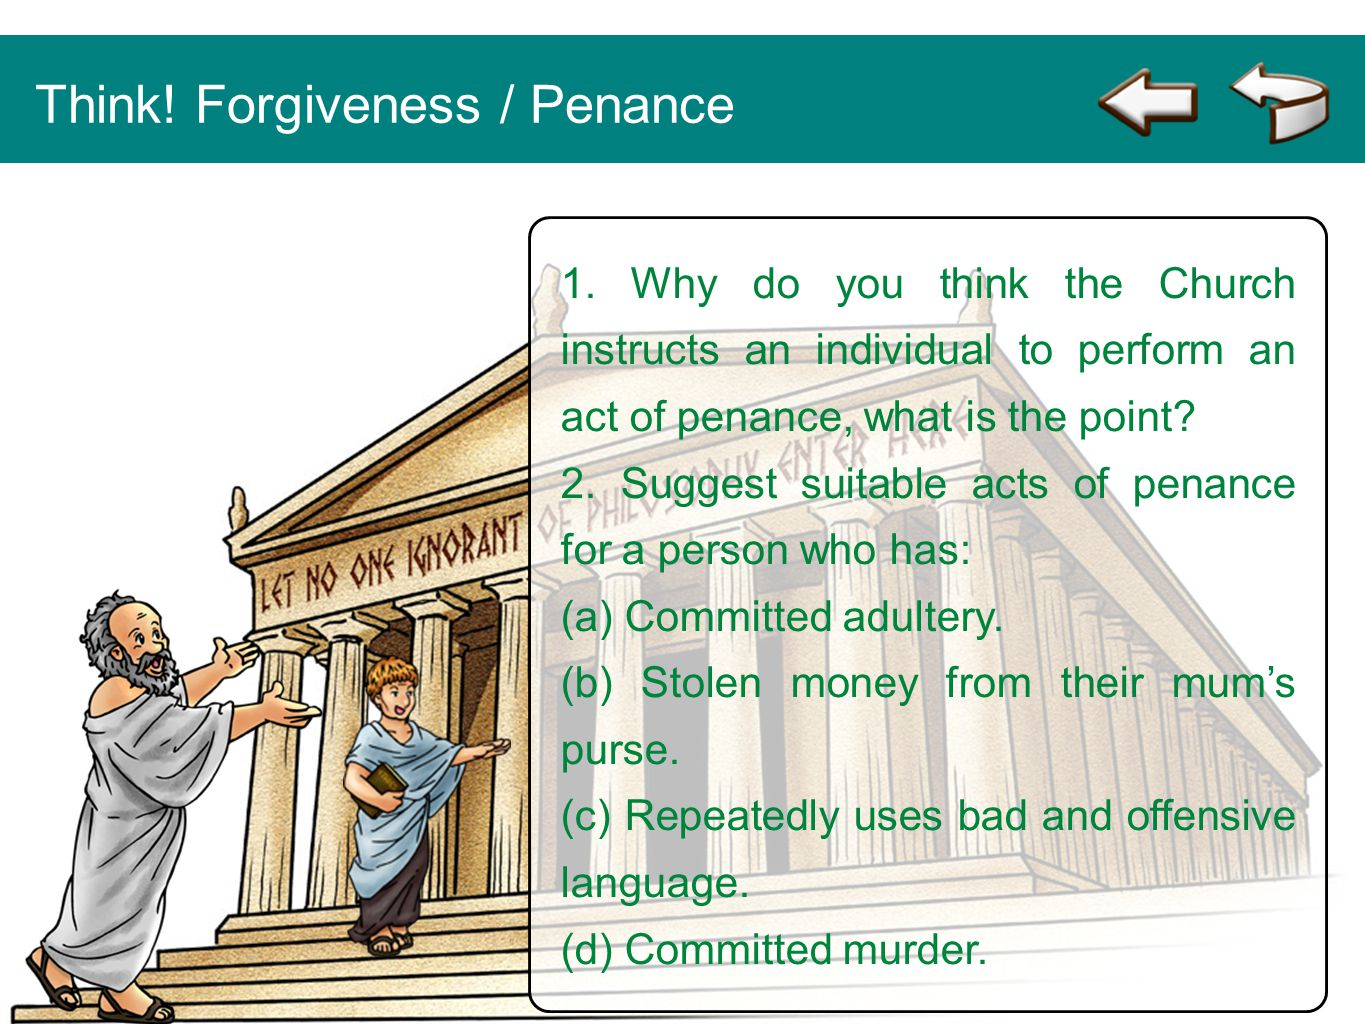 Think! Forgiveness / Penance